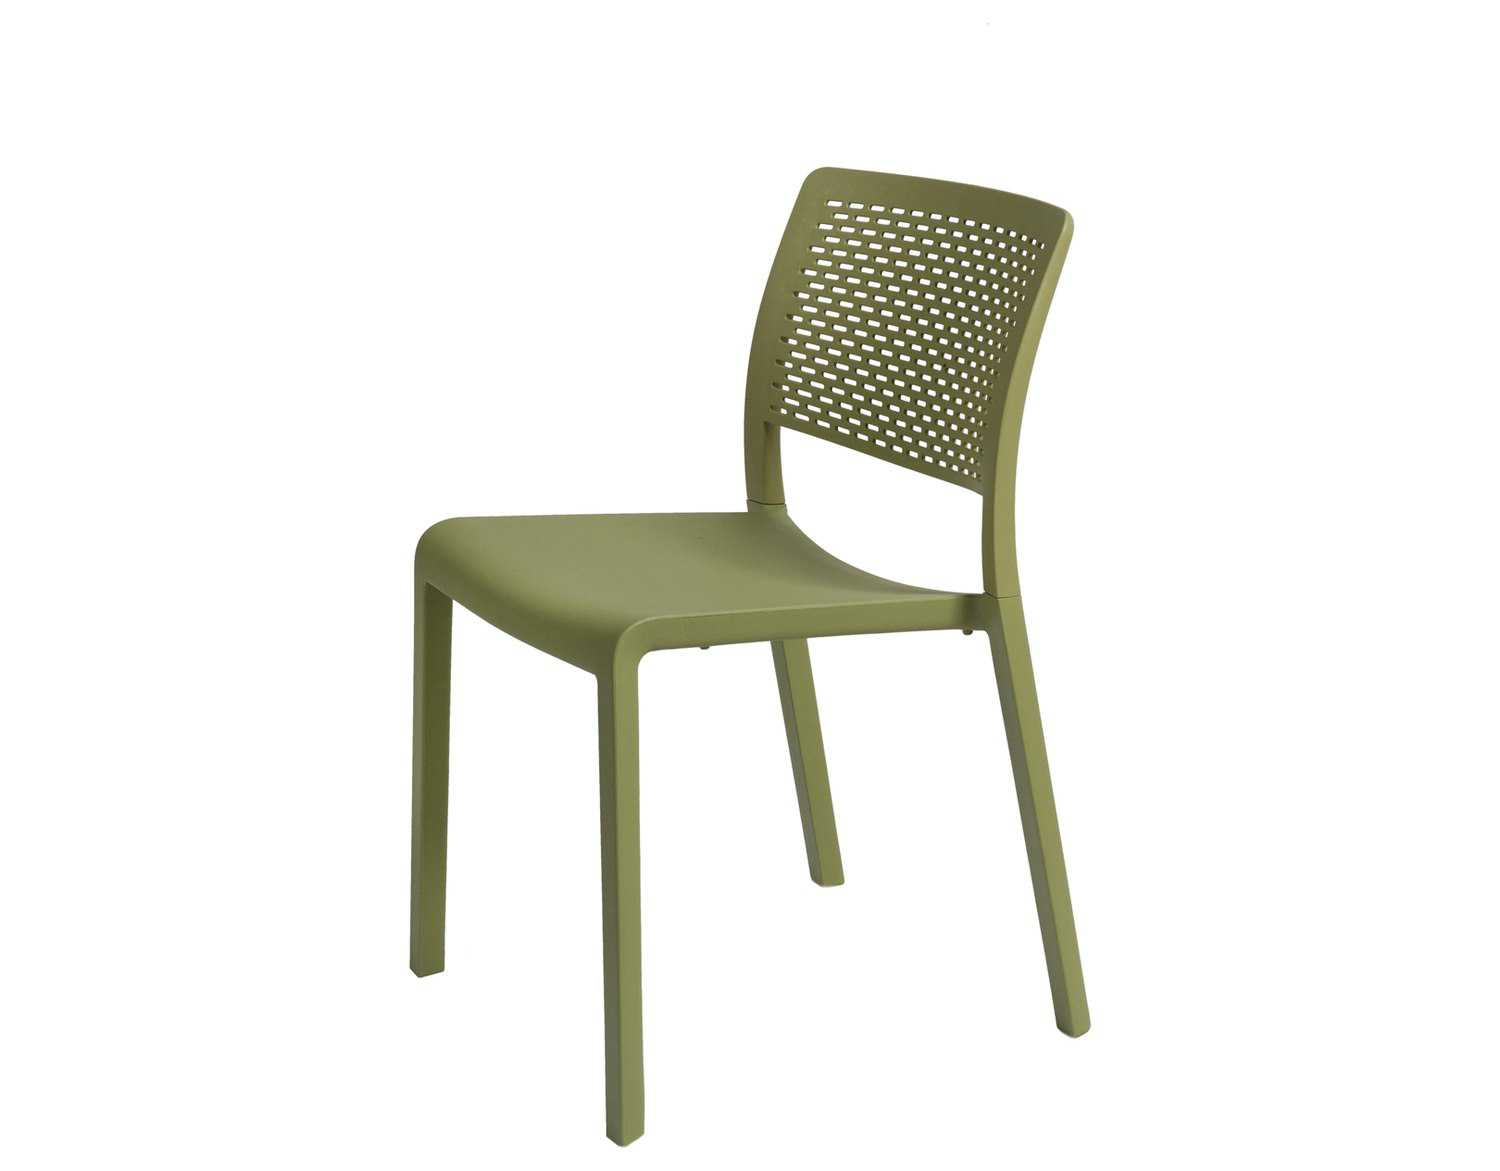 Plastic Dining Chairs Resol Trama Recycled Plastic Green Olive Side Chair Rs30690